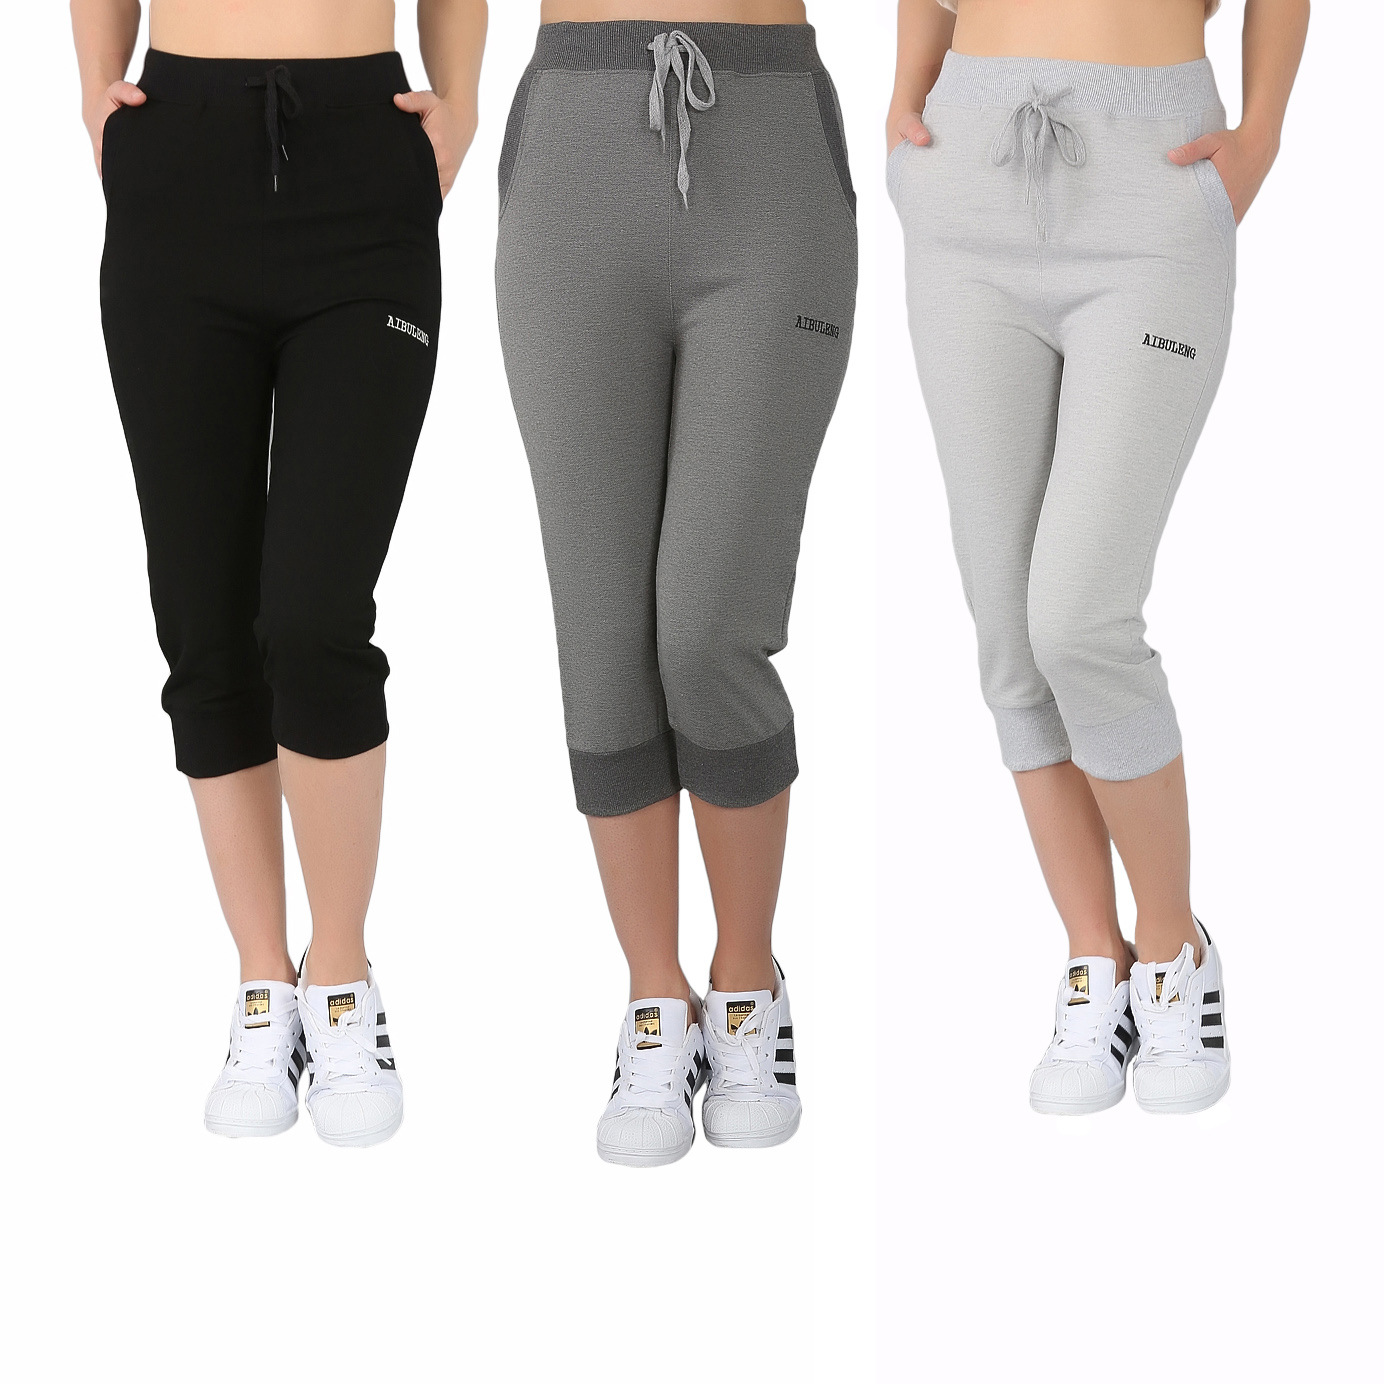 ZERLOS 2017 summer New Sweatpants Women Trousers Casual ...